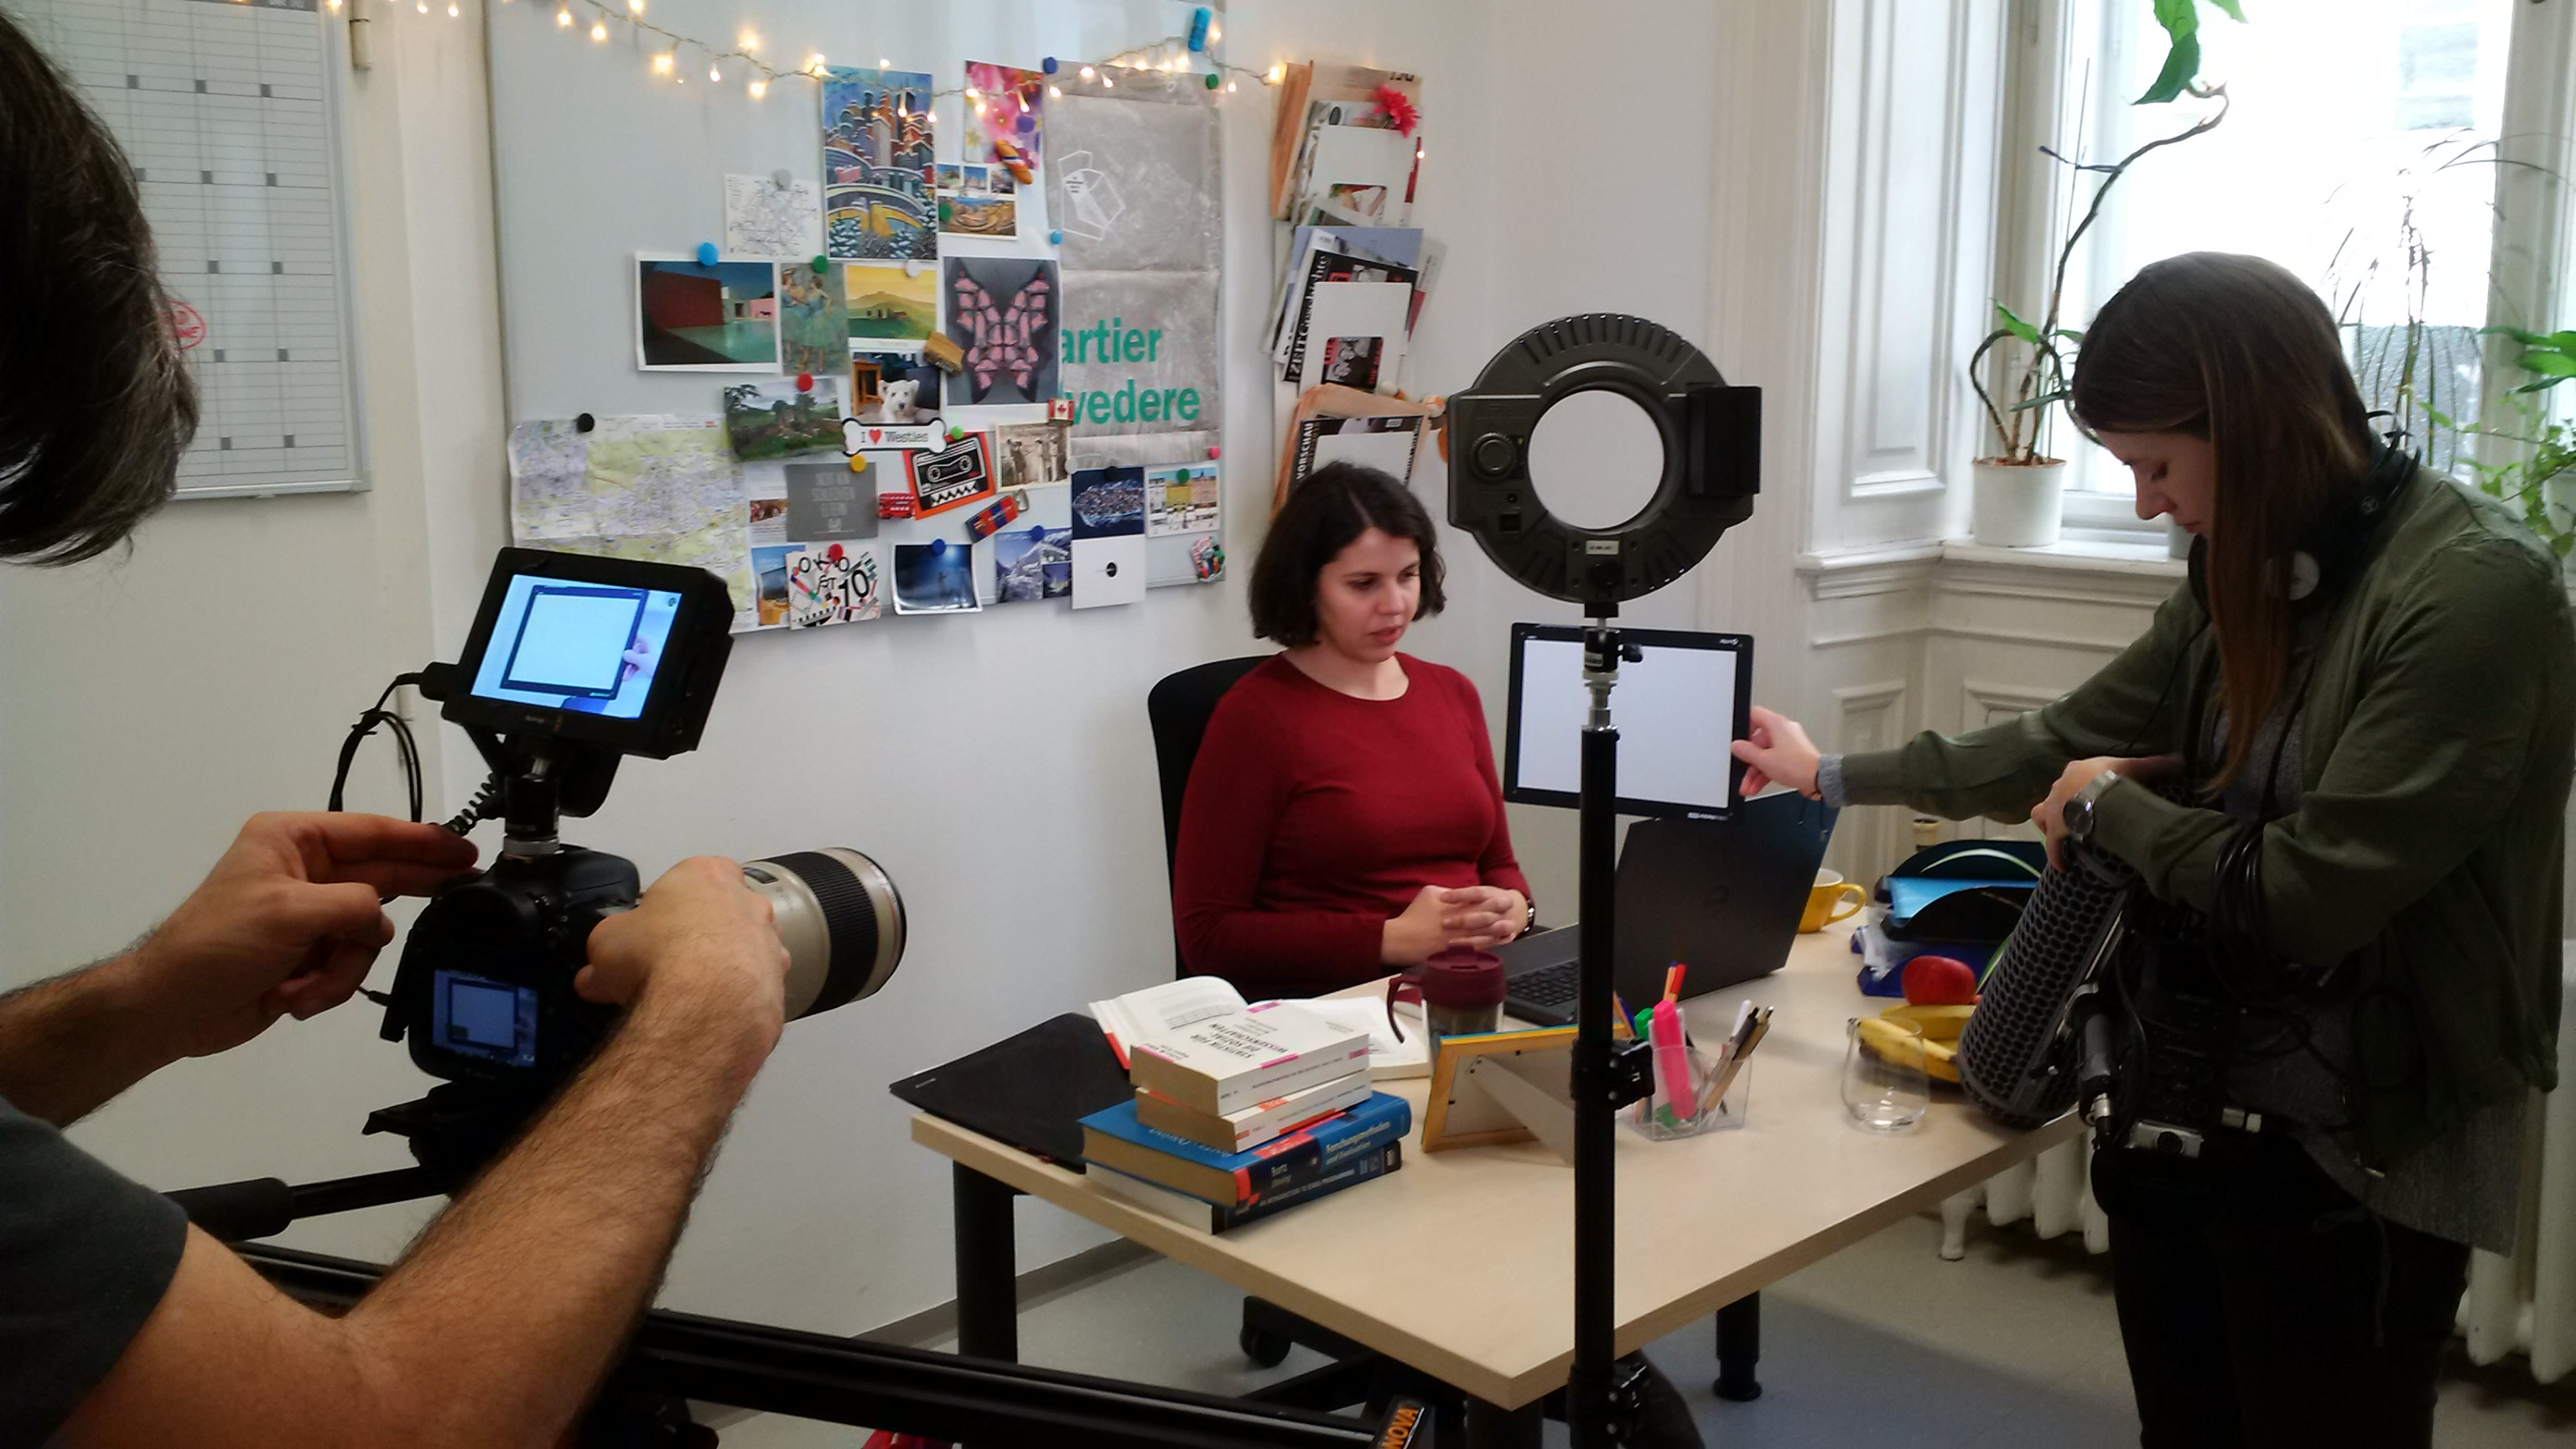 Filming the desk scene of the AUSSDA video